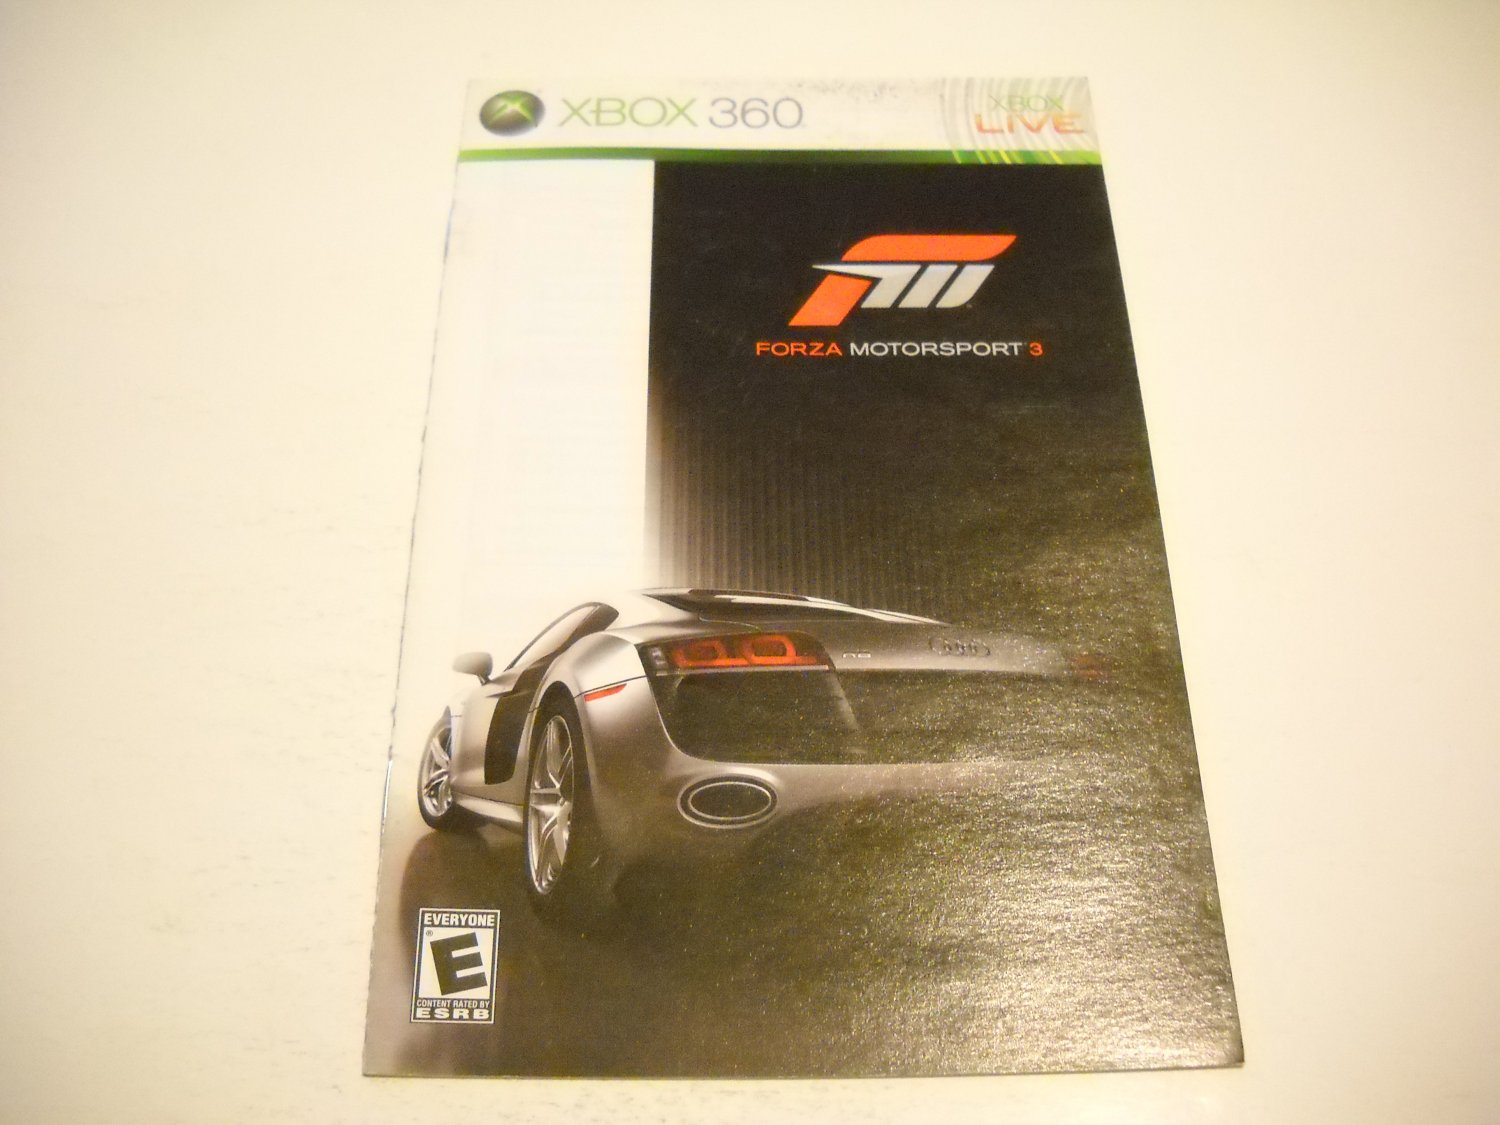 Manual ONLY ~  for Forza Motorsport 3   - Xbox 360 Instruction Booklet